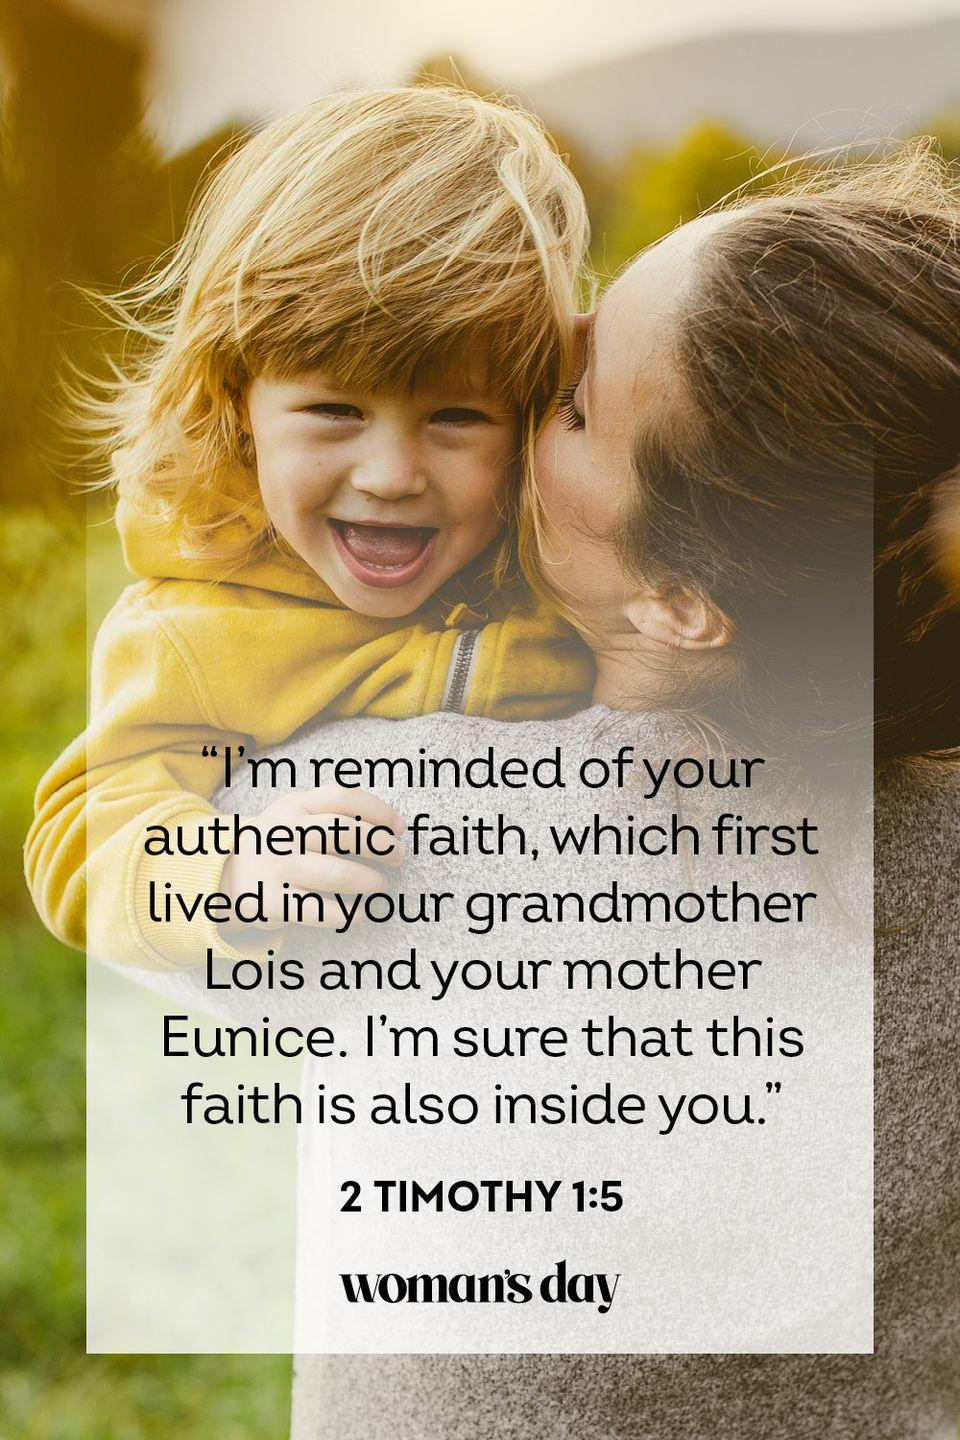 "<p>""I'm reminded of your authentic faith, which first lived in your grandmother Lois and your mother Eunice. I'm sure that this faith is also inside you.""</p><p><strong>The Good News:</strong> Good morals and strong fatih can be seen across multiple generations.</p>"